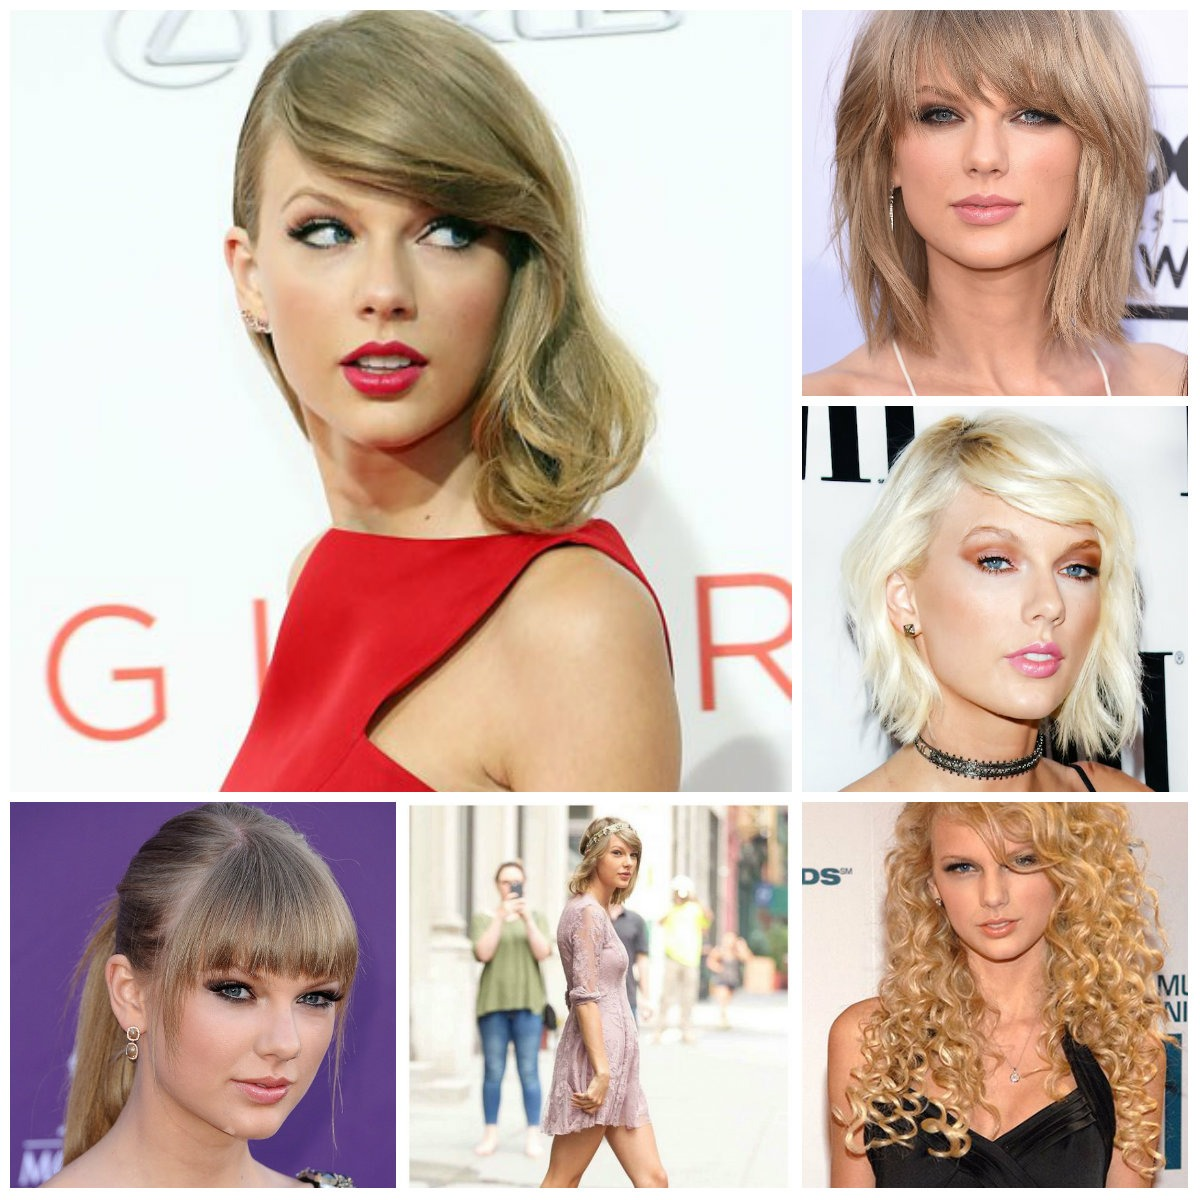 Taylor Swift's Best Hairstyles to Taste in 2017